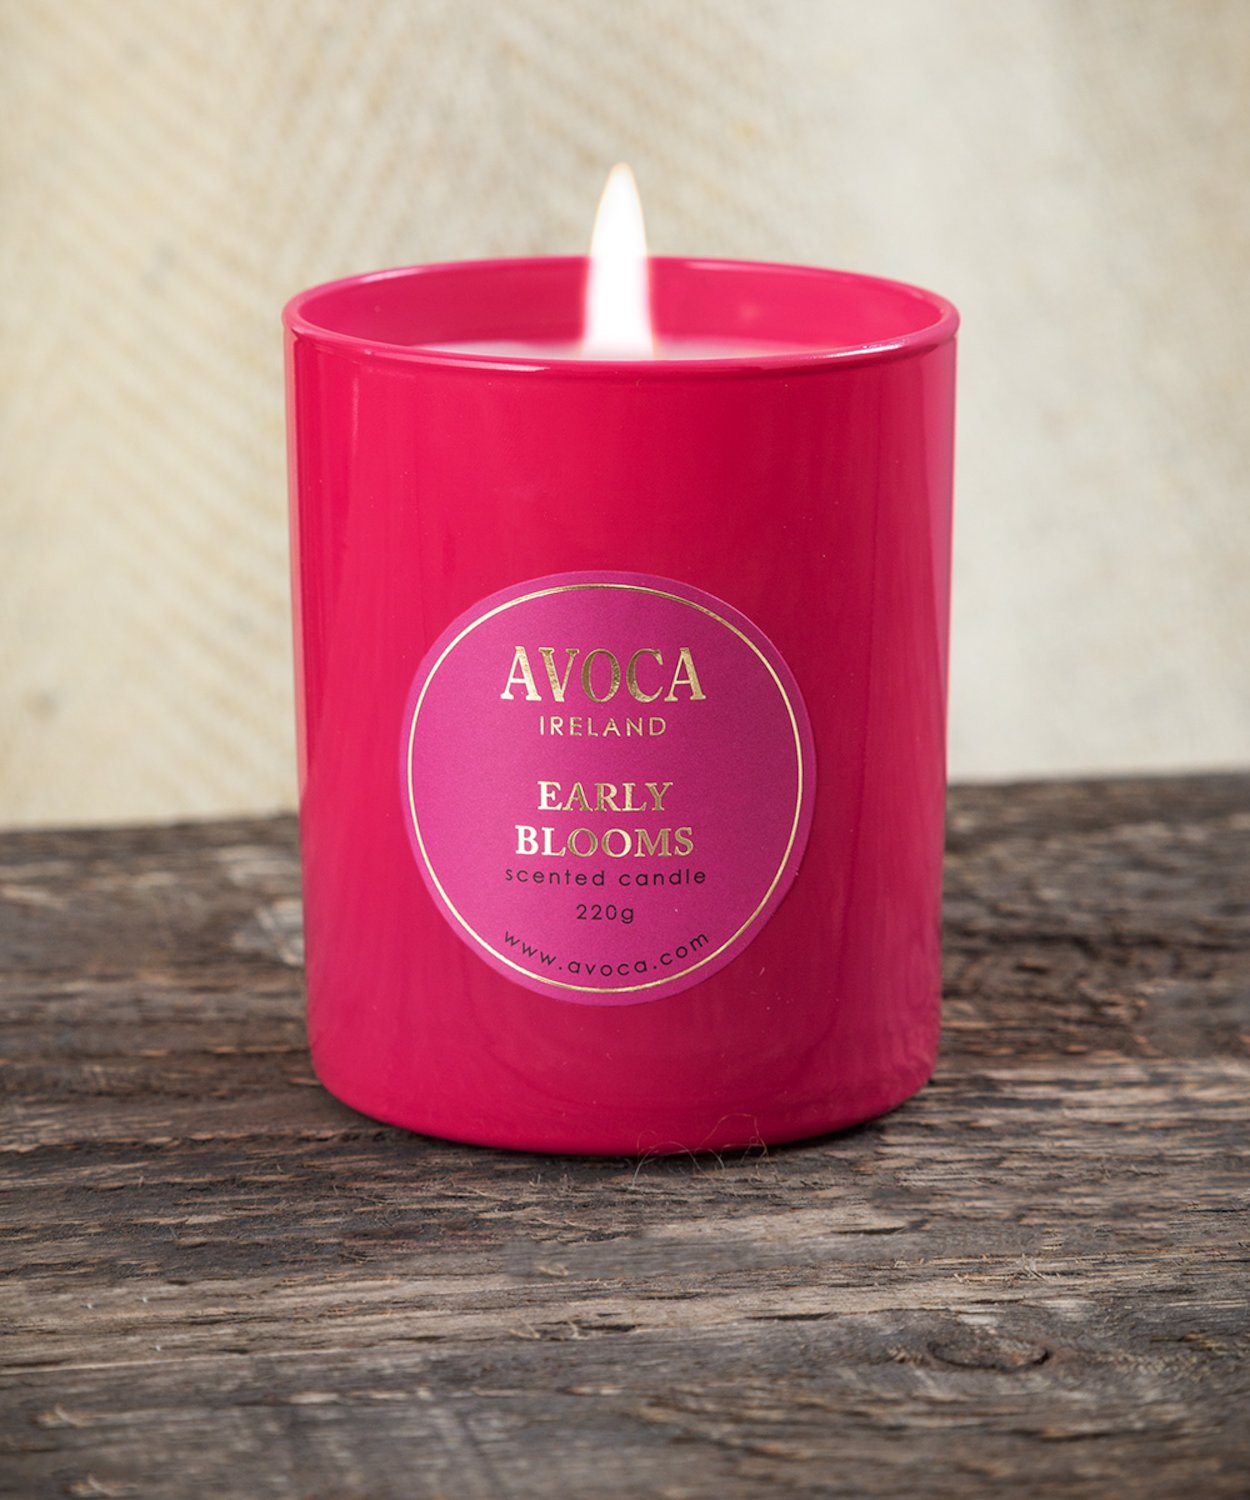 Early Blooms Scented Candle